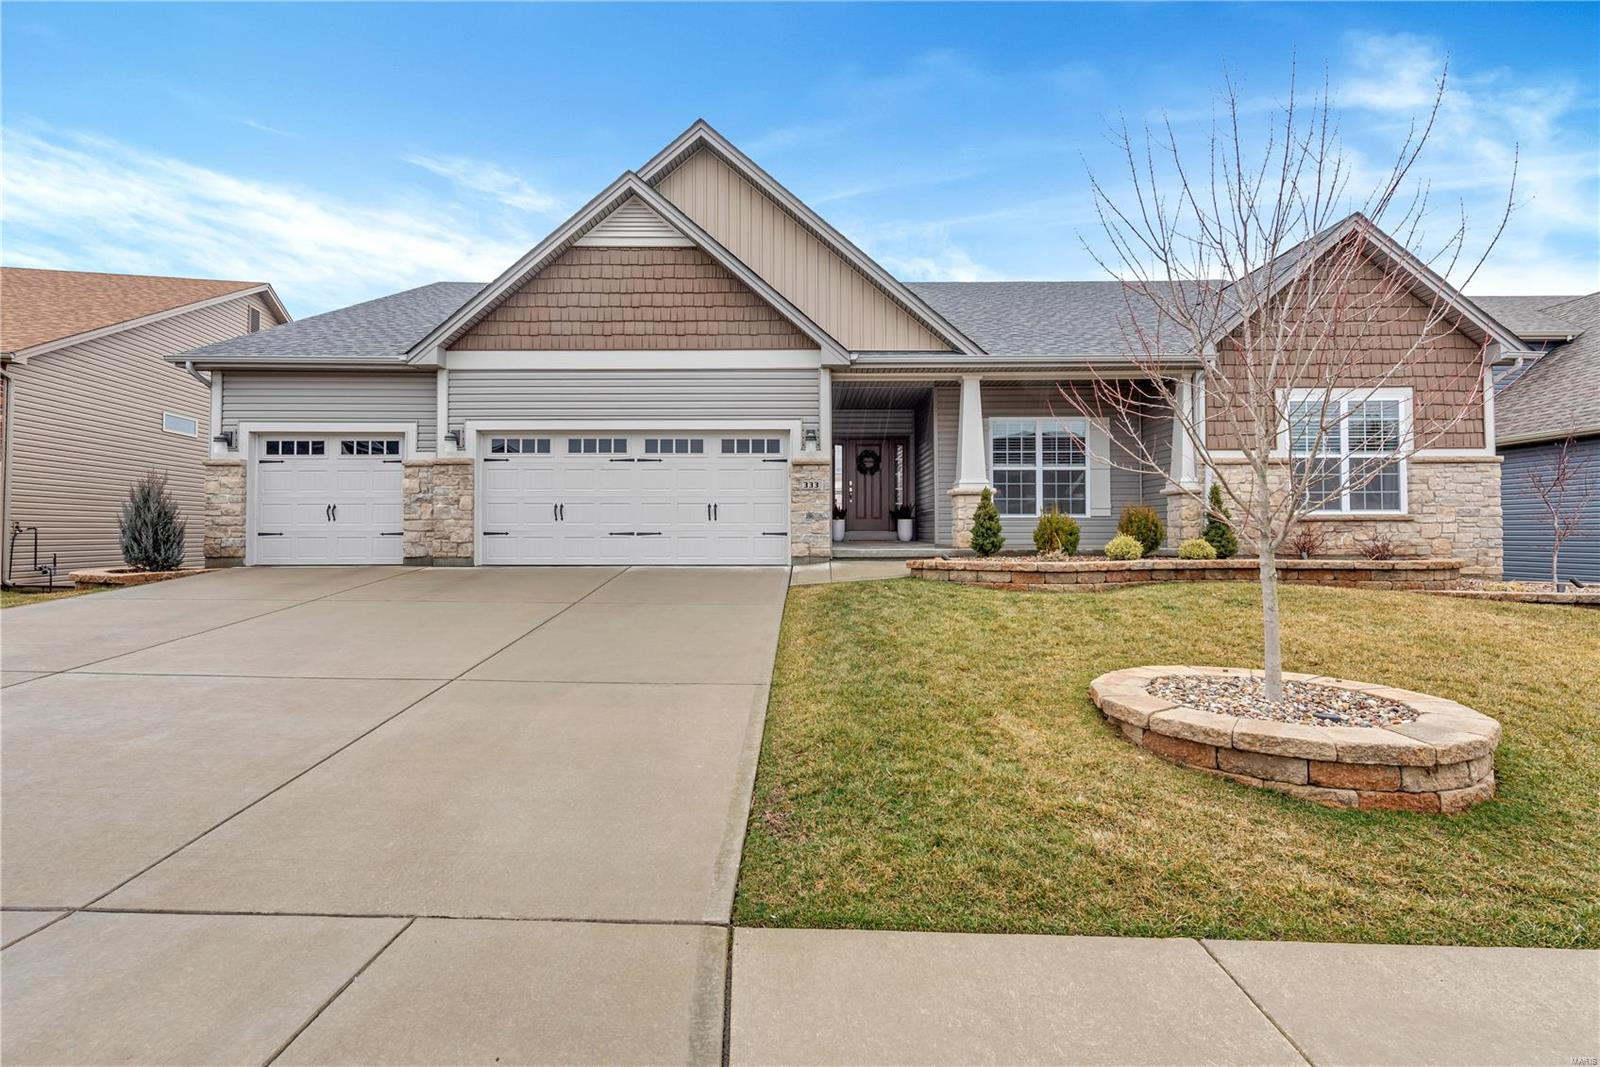 333 Wyndemere Property Photo - Lake St Louis, MO real estate listing